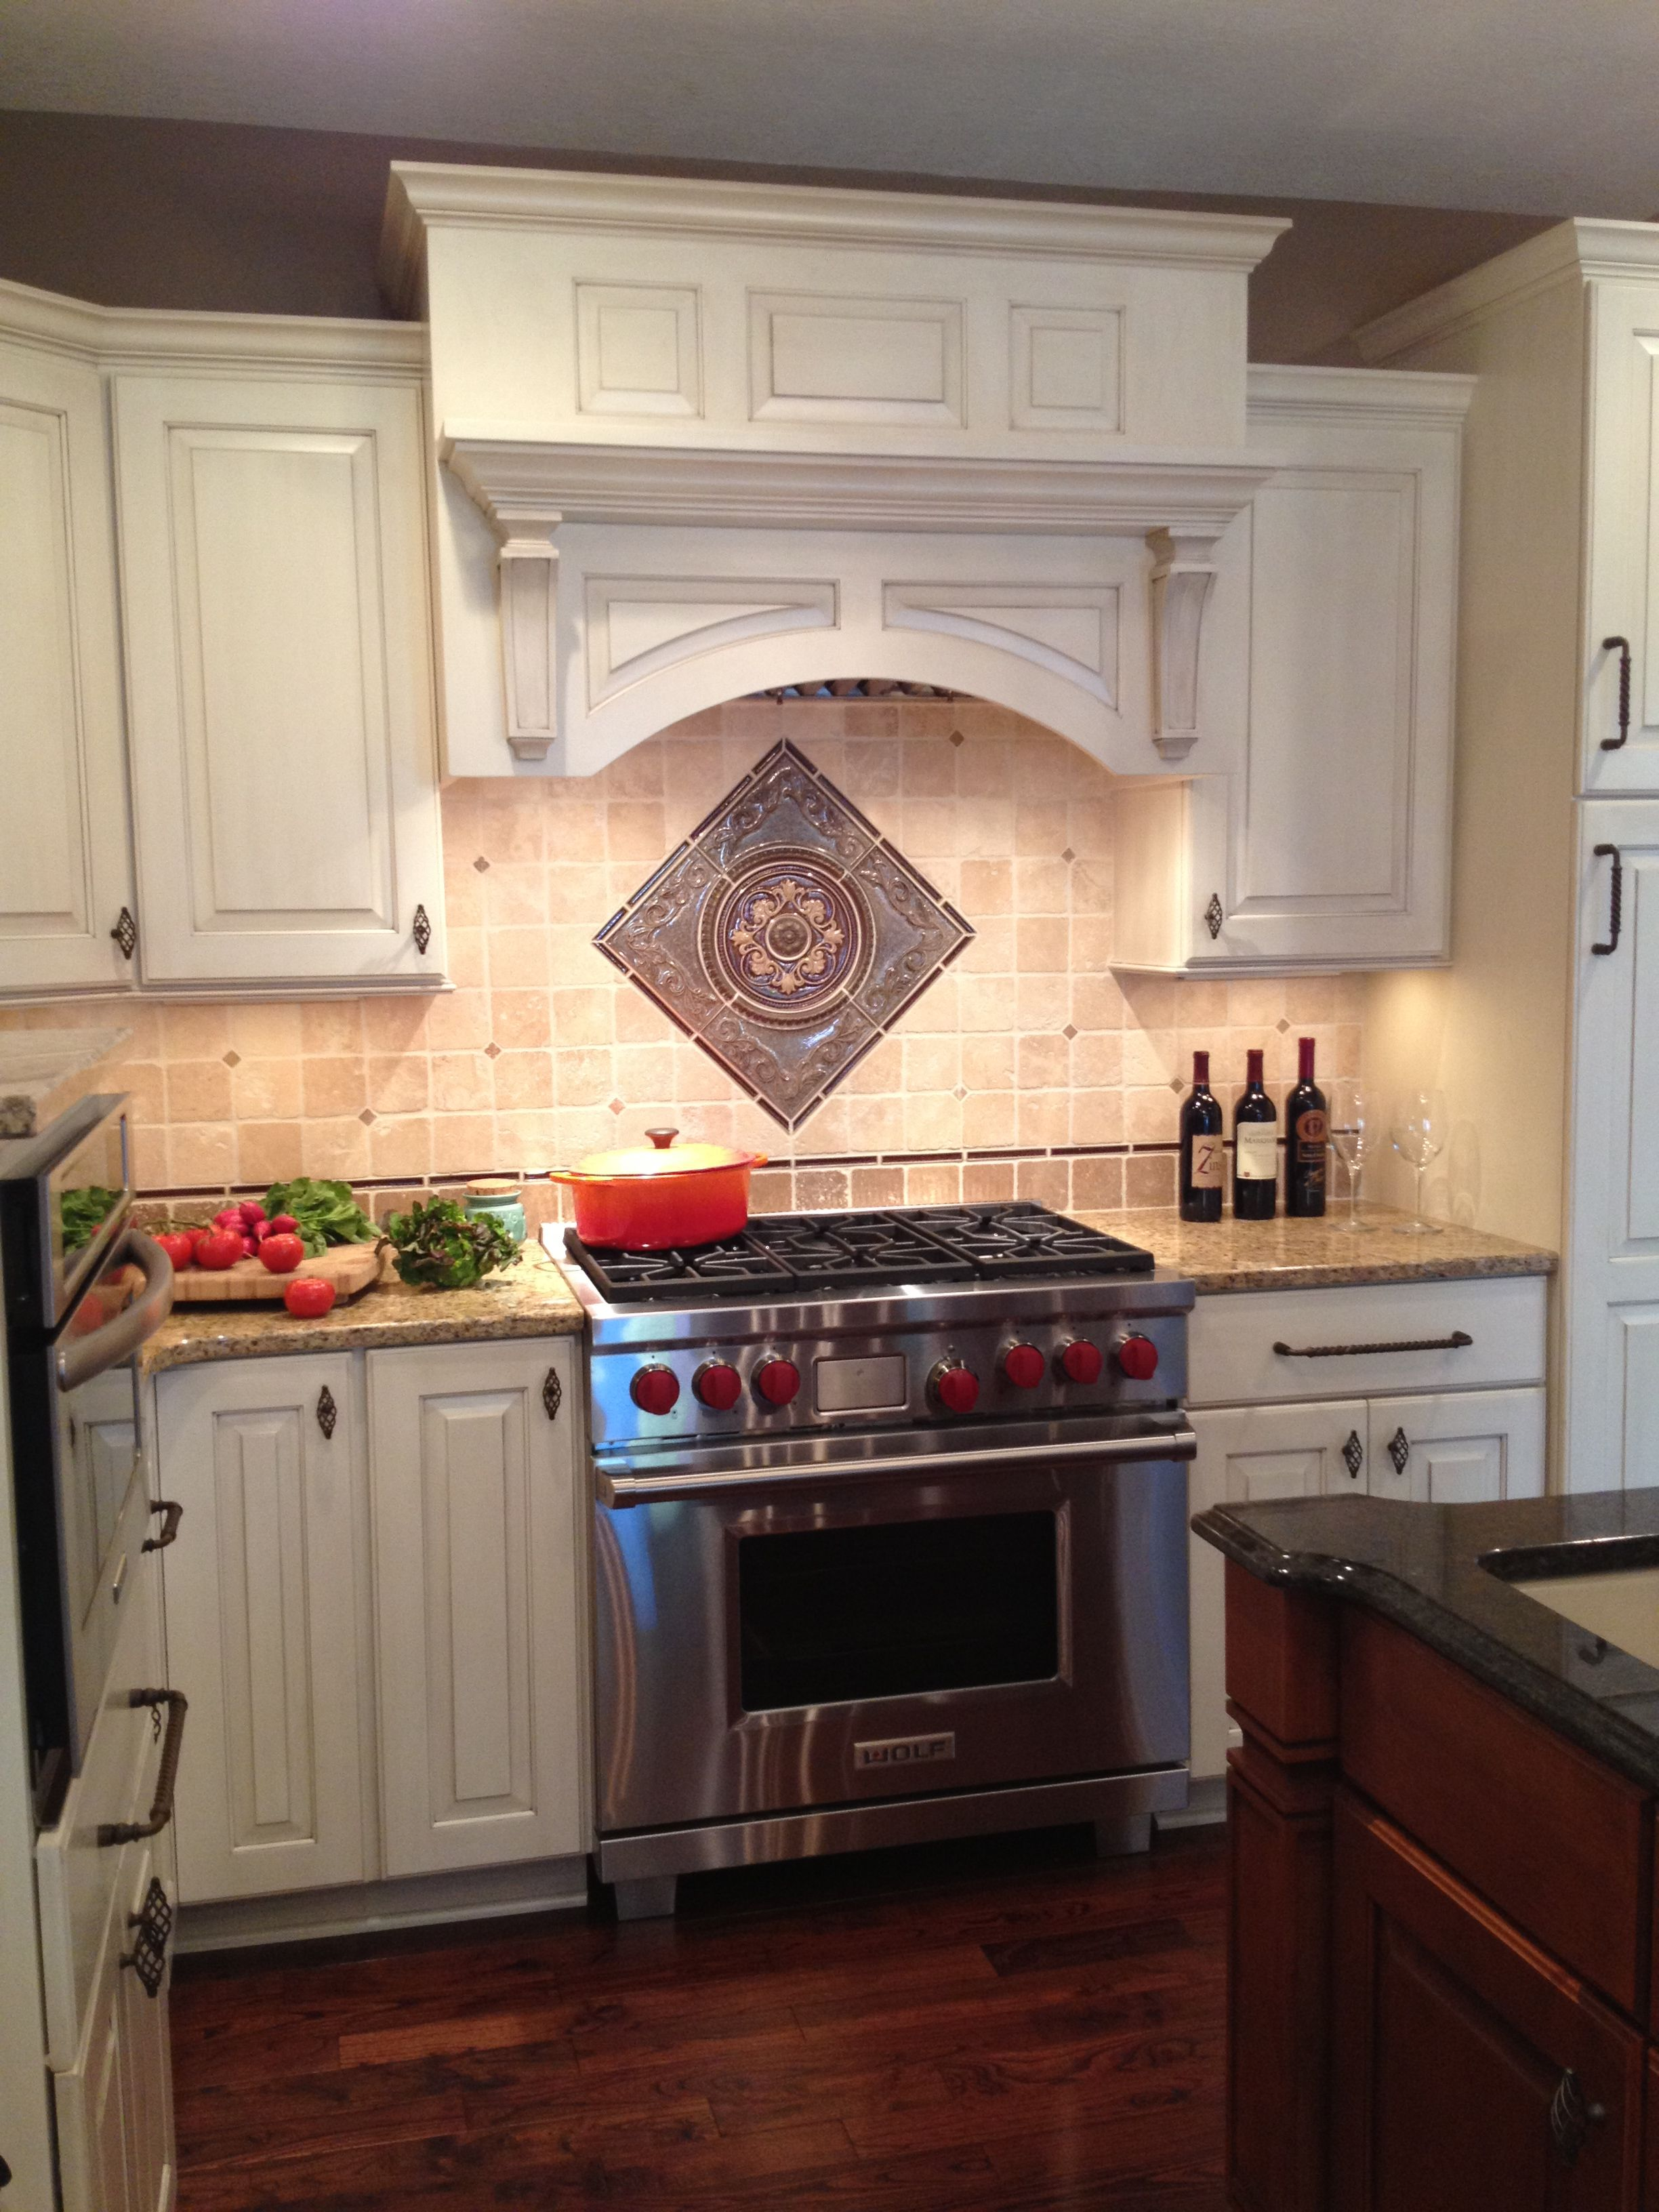 Powell Ohio kitchen remodel features a tumbled stone backsplash with ...